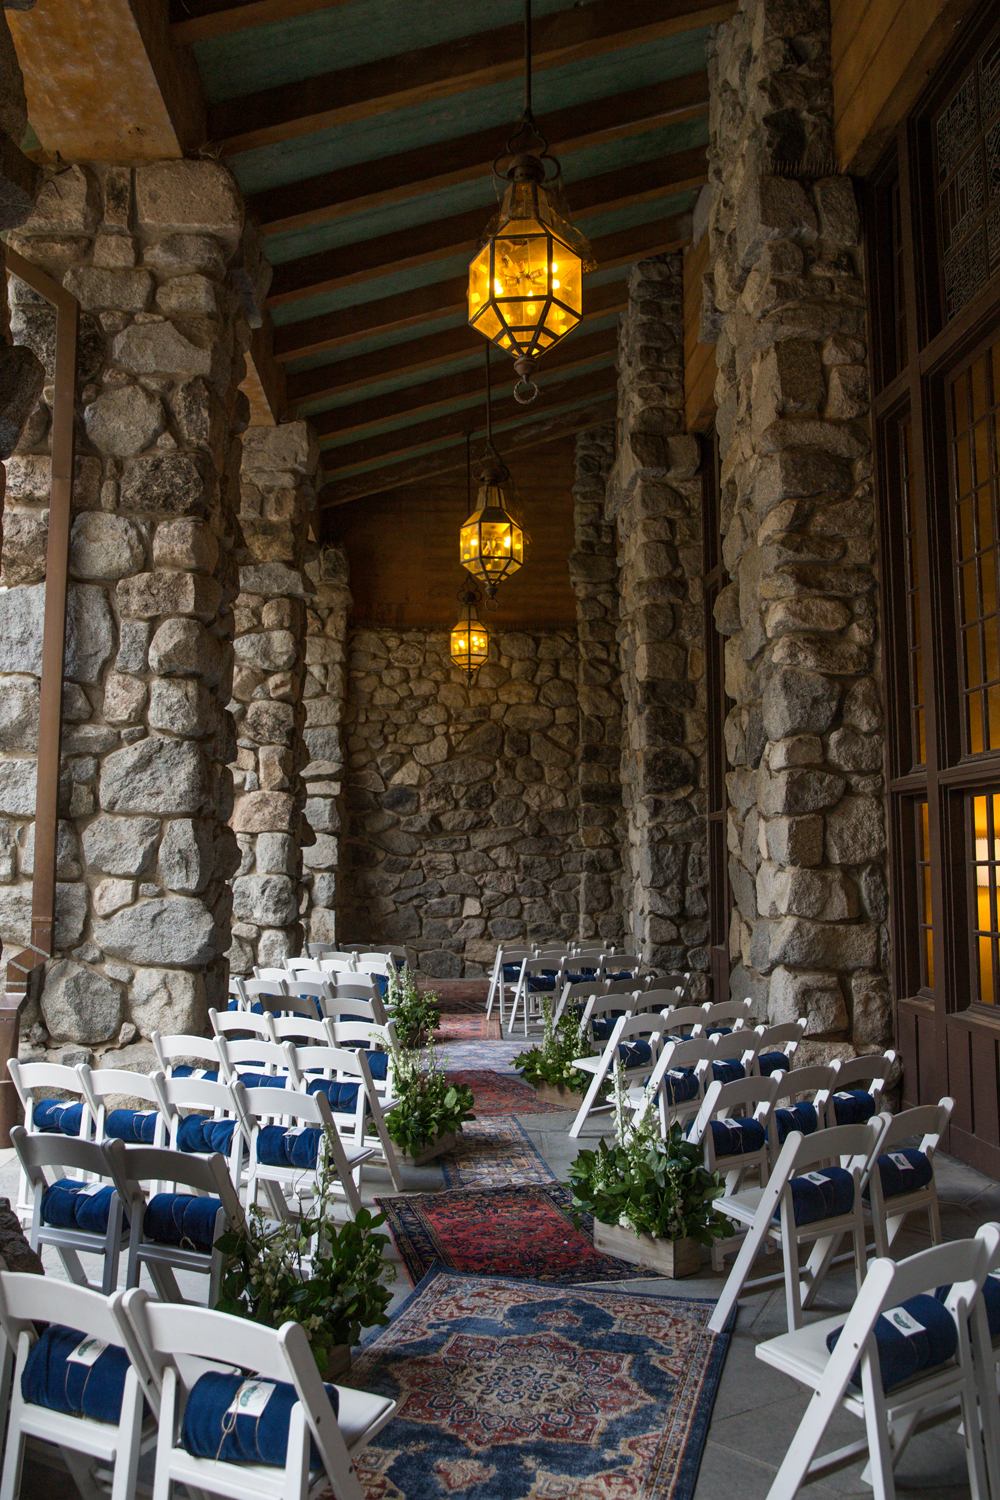 roque_events_yosemite_wedding_bogdan_condor132.jpg